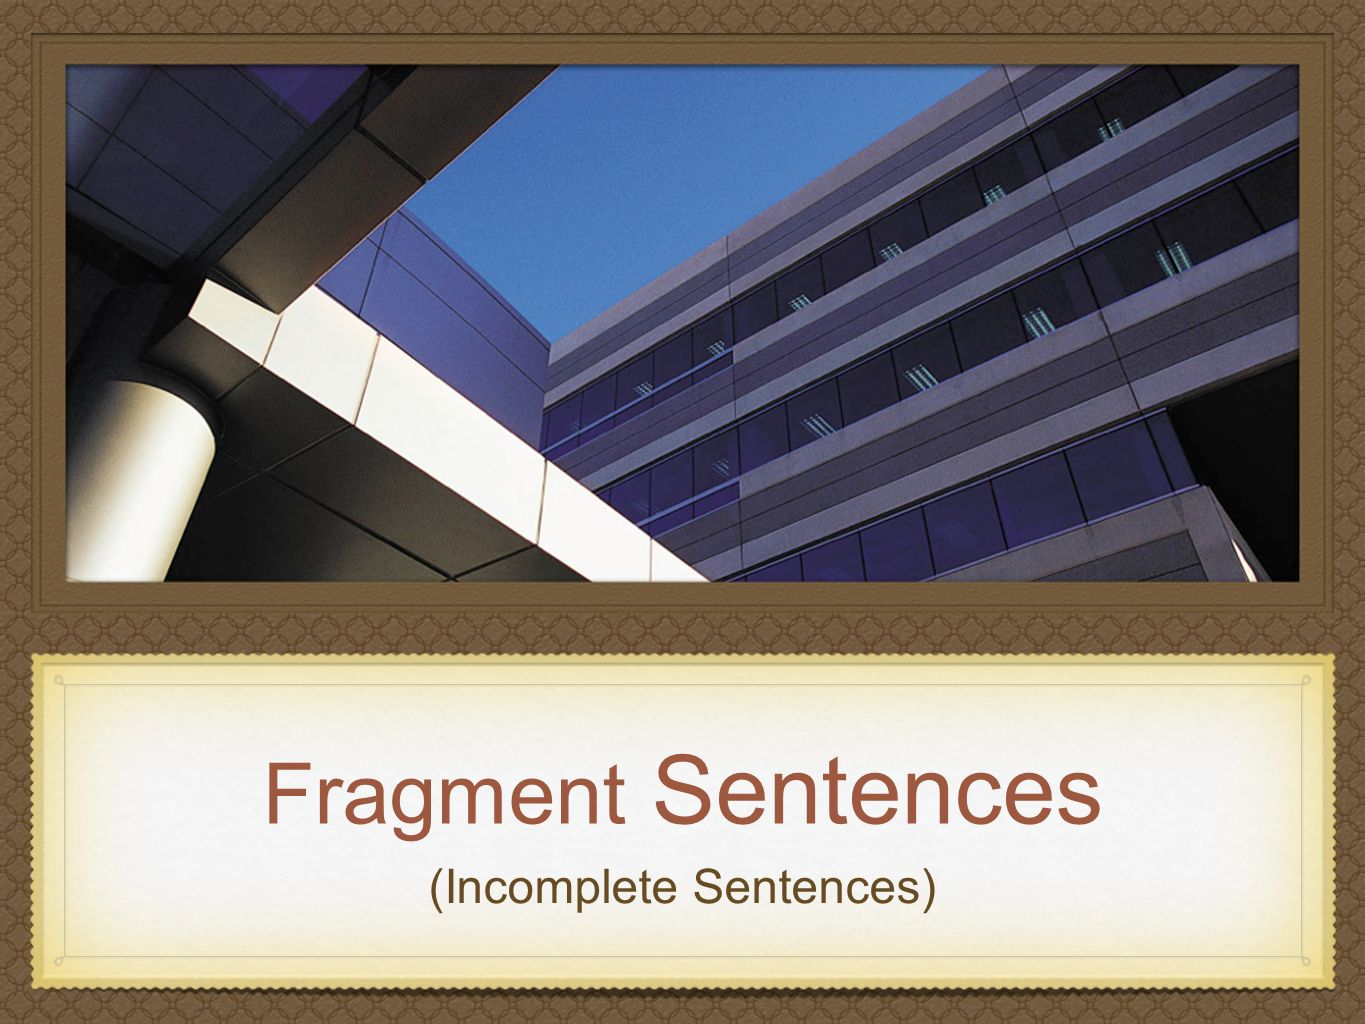 (Incomplete Sentences)